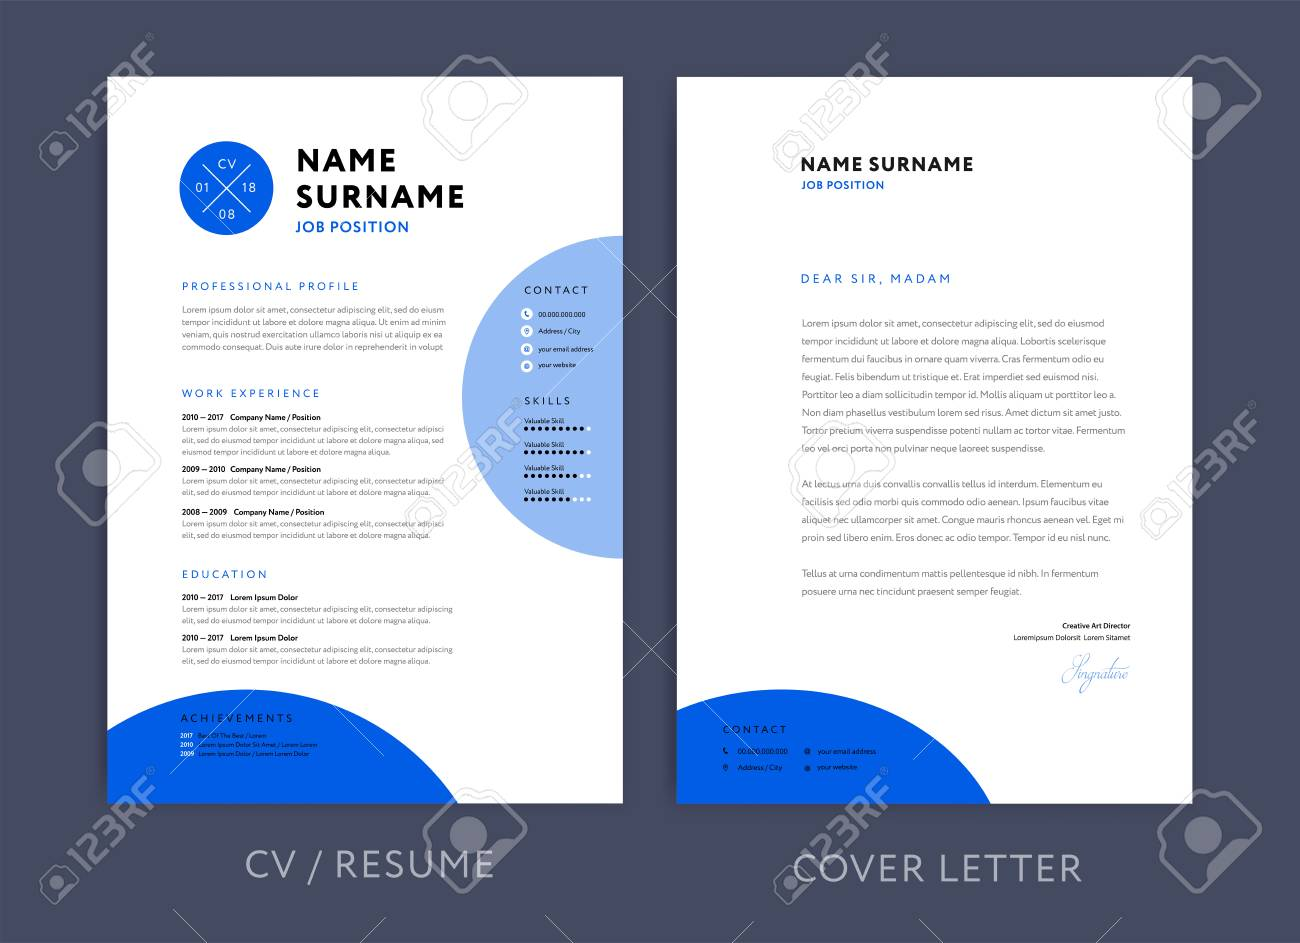 professional cv resume template blue design and letterhead royalty free vectors stock Resume Professional Resume Letterhead